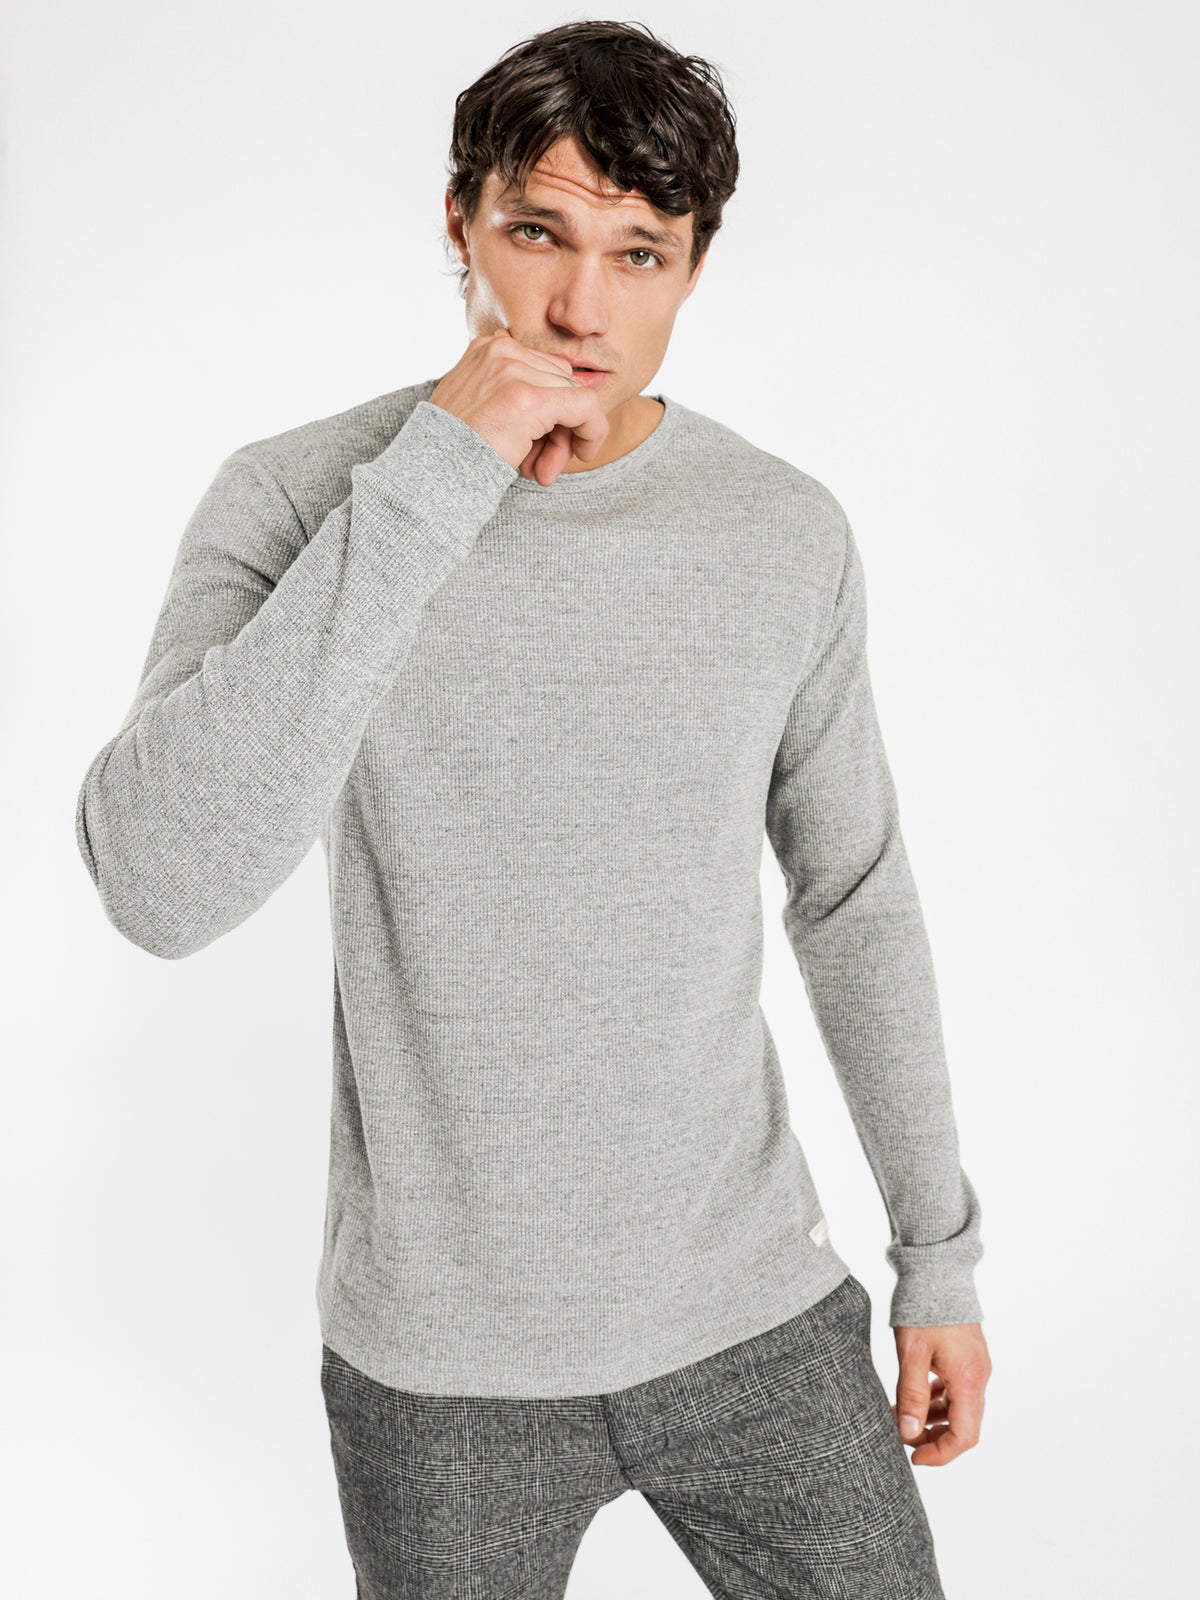 Jax Waffle Long Sleeve Crew in Grey Marle